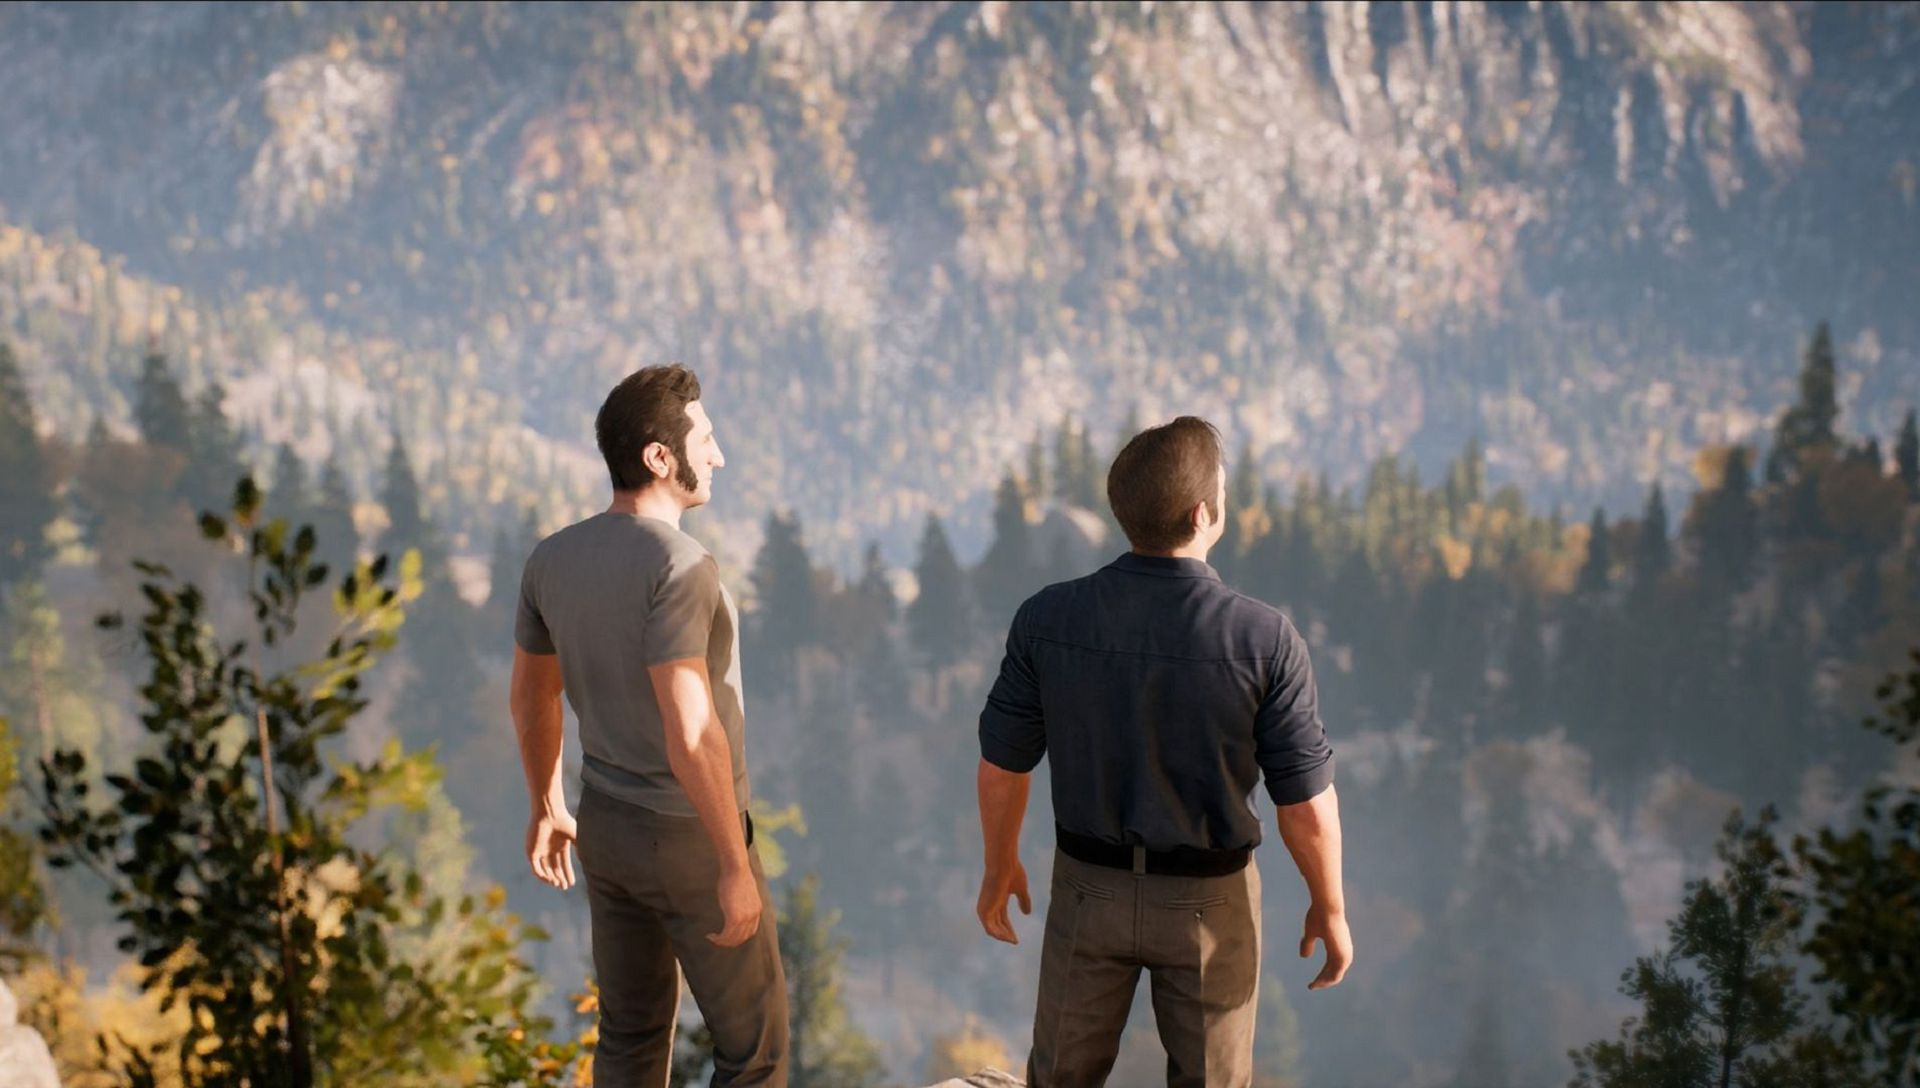 a way out download size pc